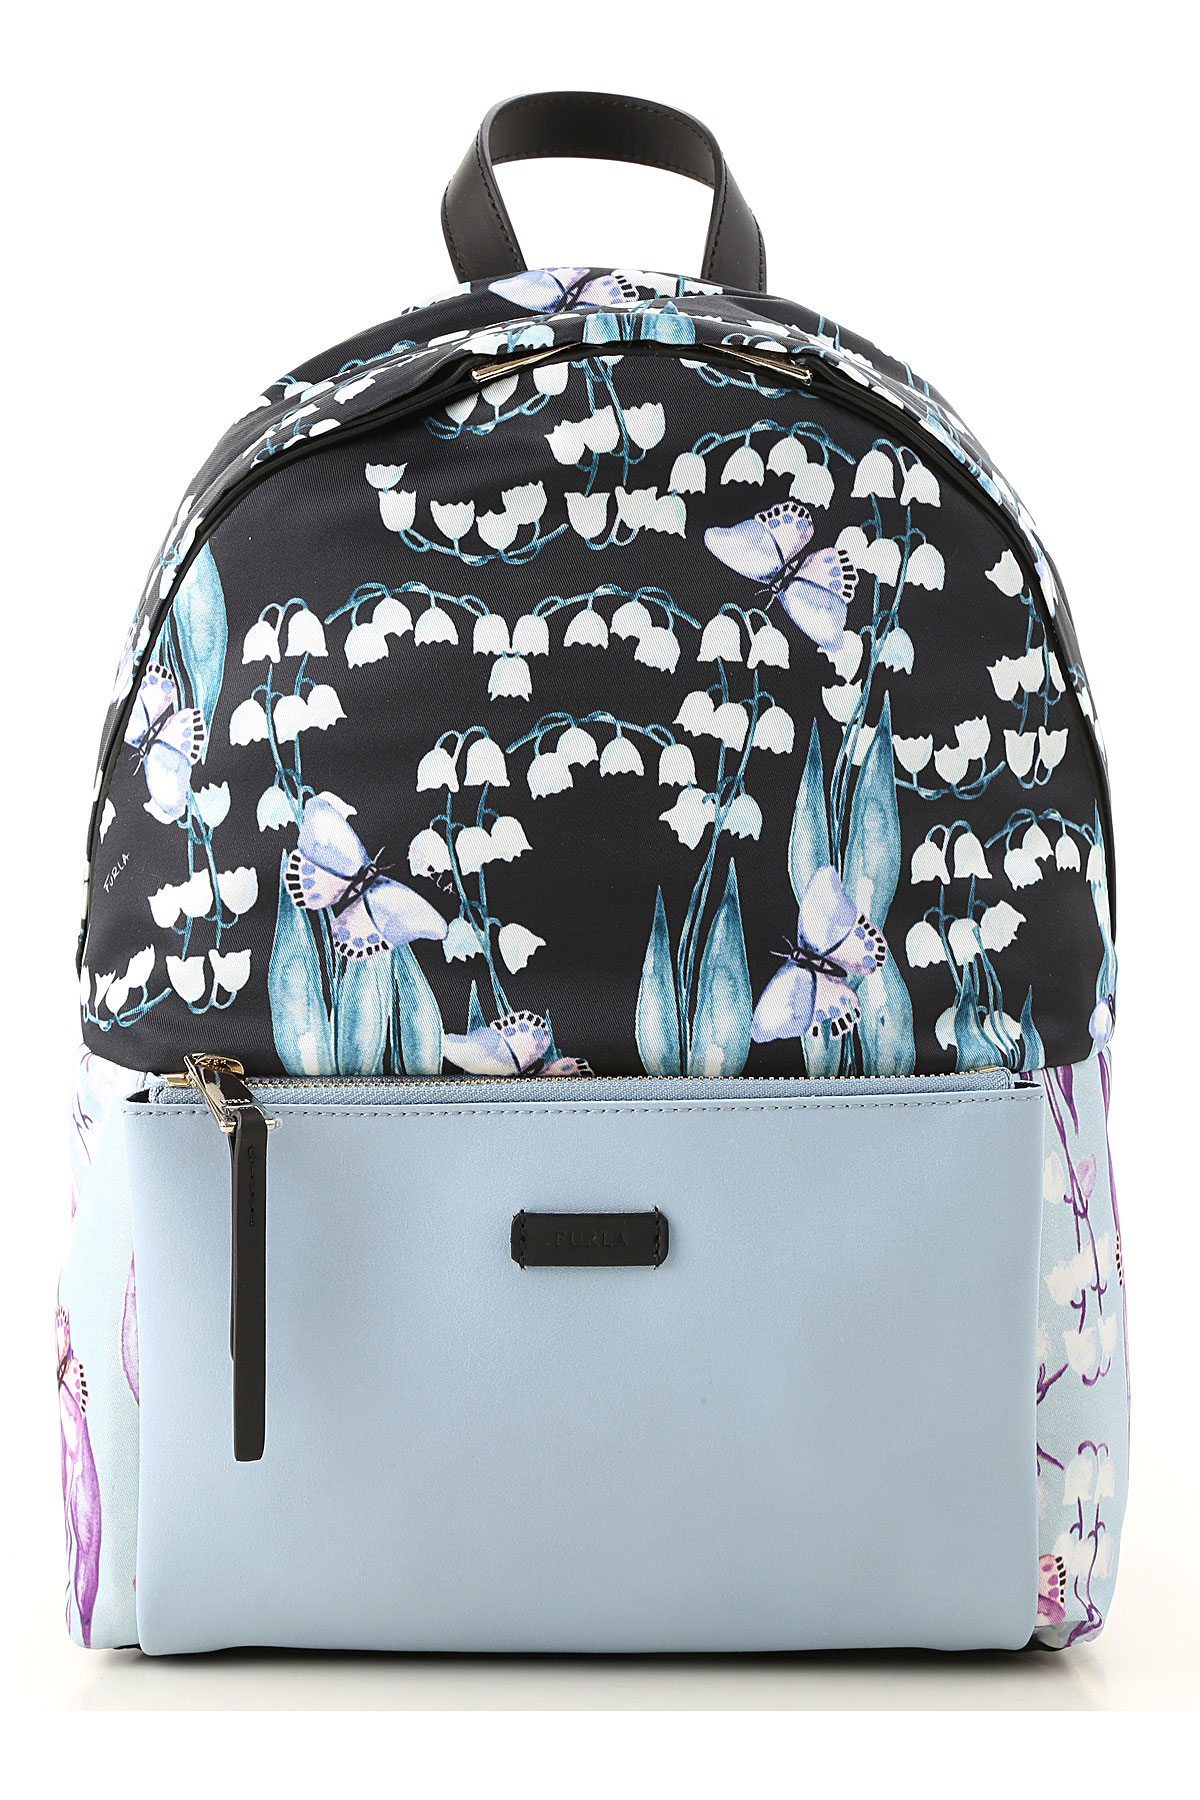 Image of Furla Backpack for Women, Black, Fabric, 2017